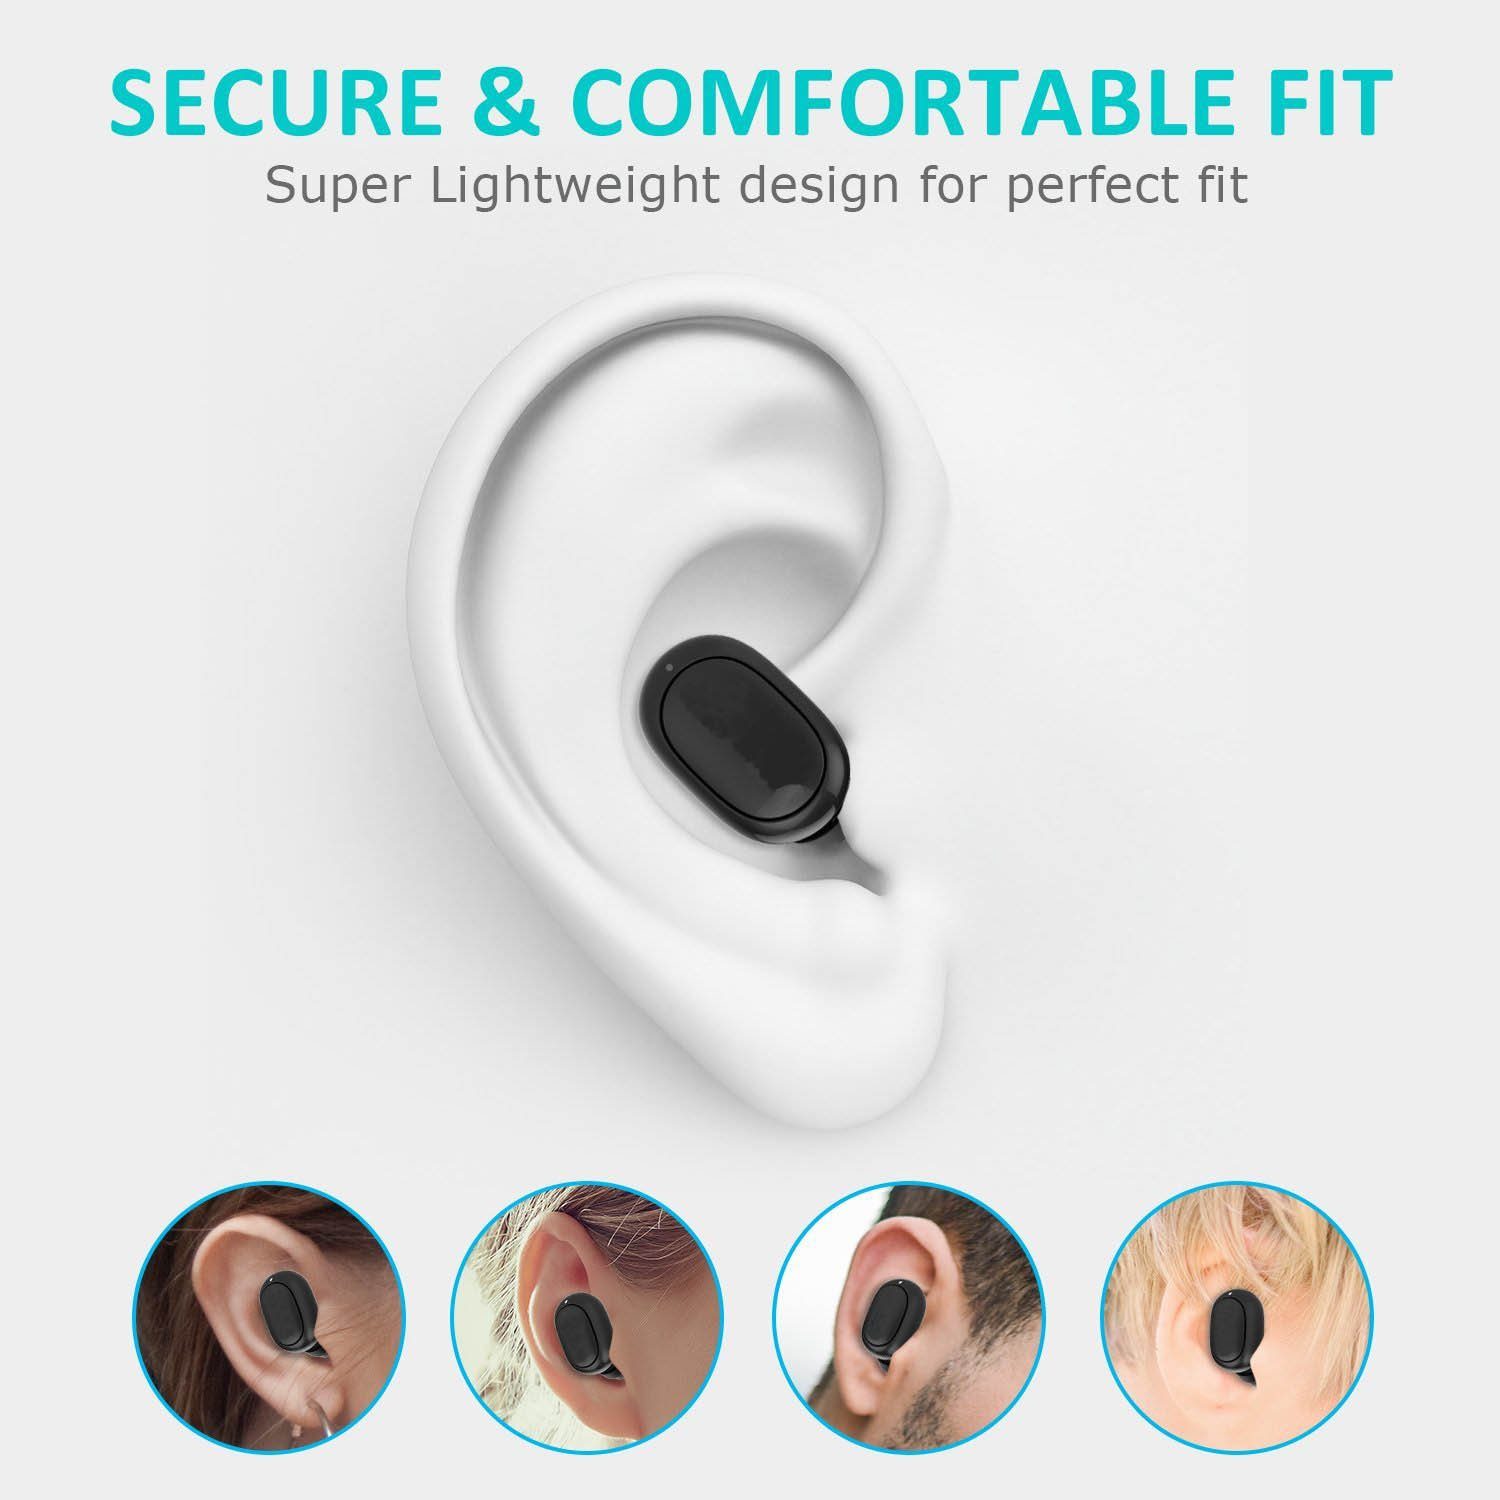 Bluetooth Earbud,Mini Bluetooth Earpiece Wireless Invisible Bluetooth Headset,In-Ear Earphone Handsfree Noise Cancelling with Mic for iPhone,Samsung and other Android Smartphones